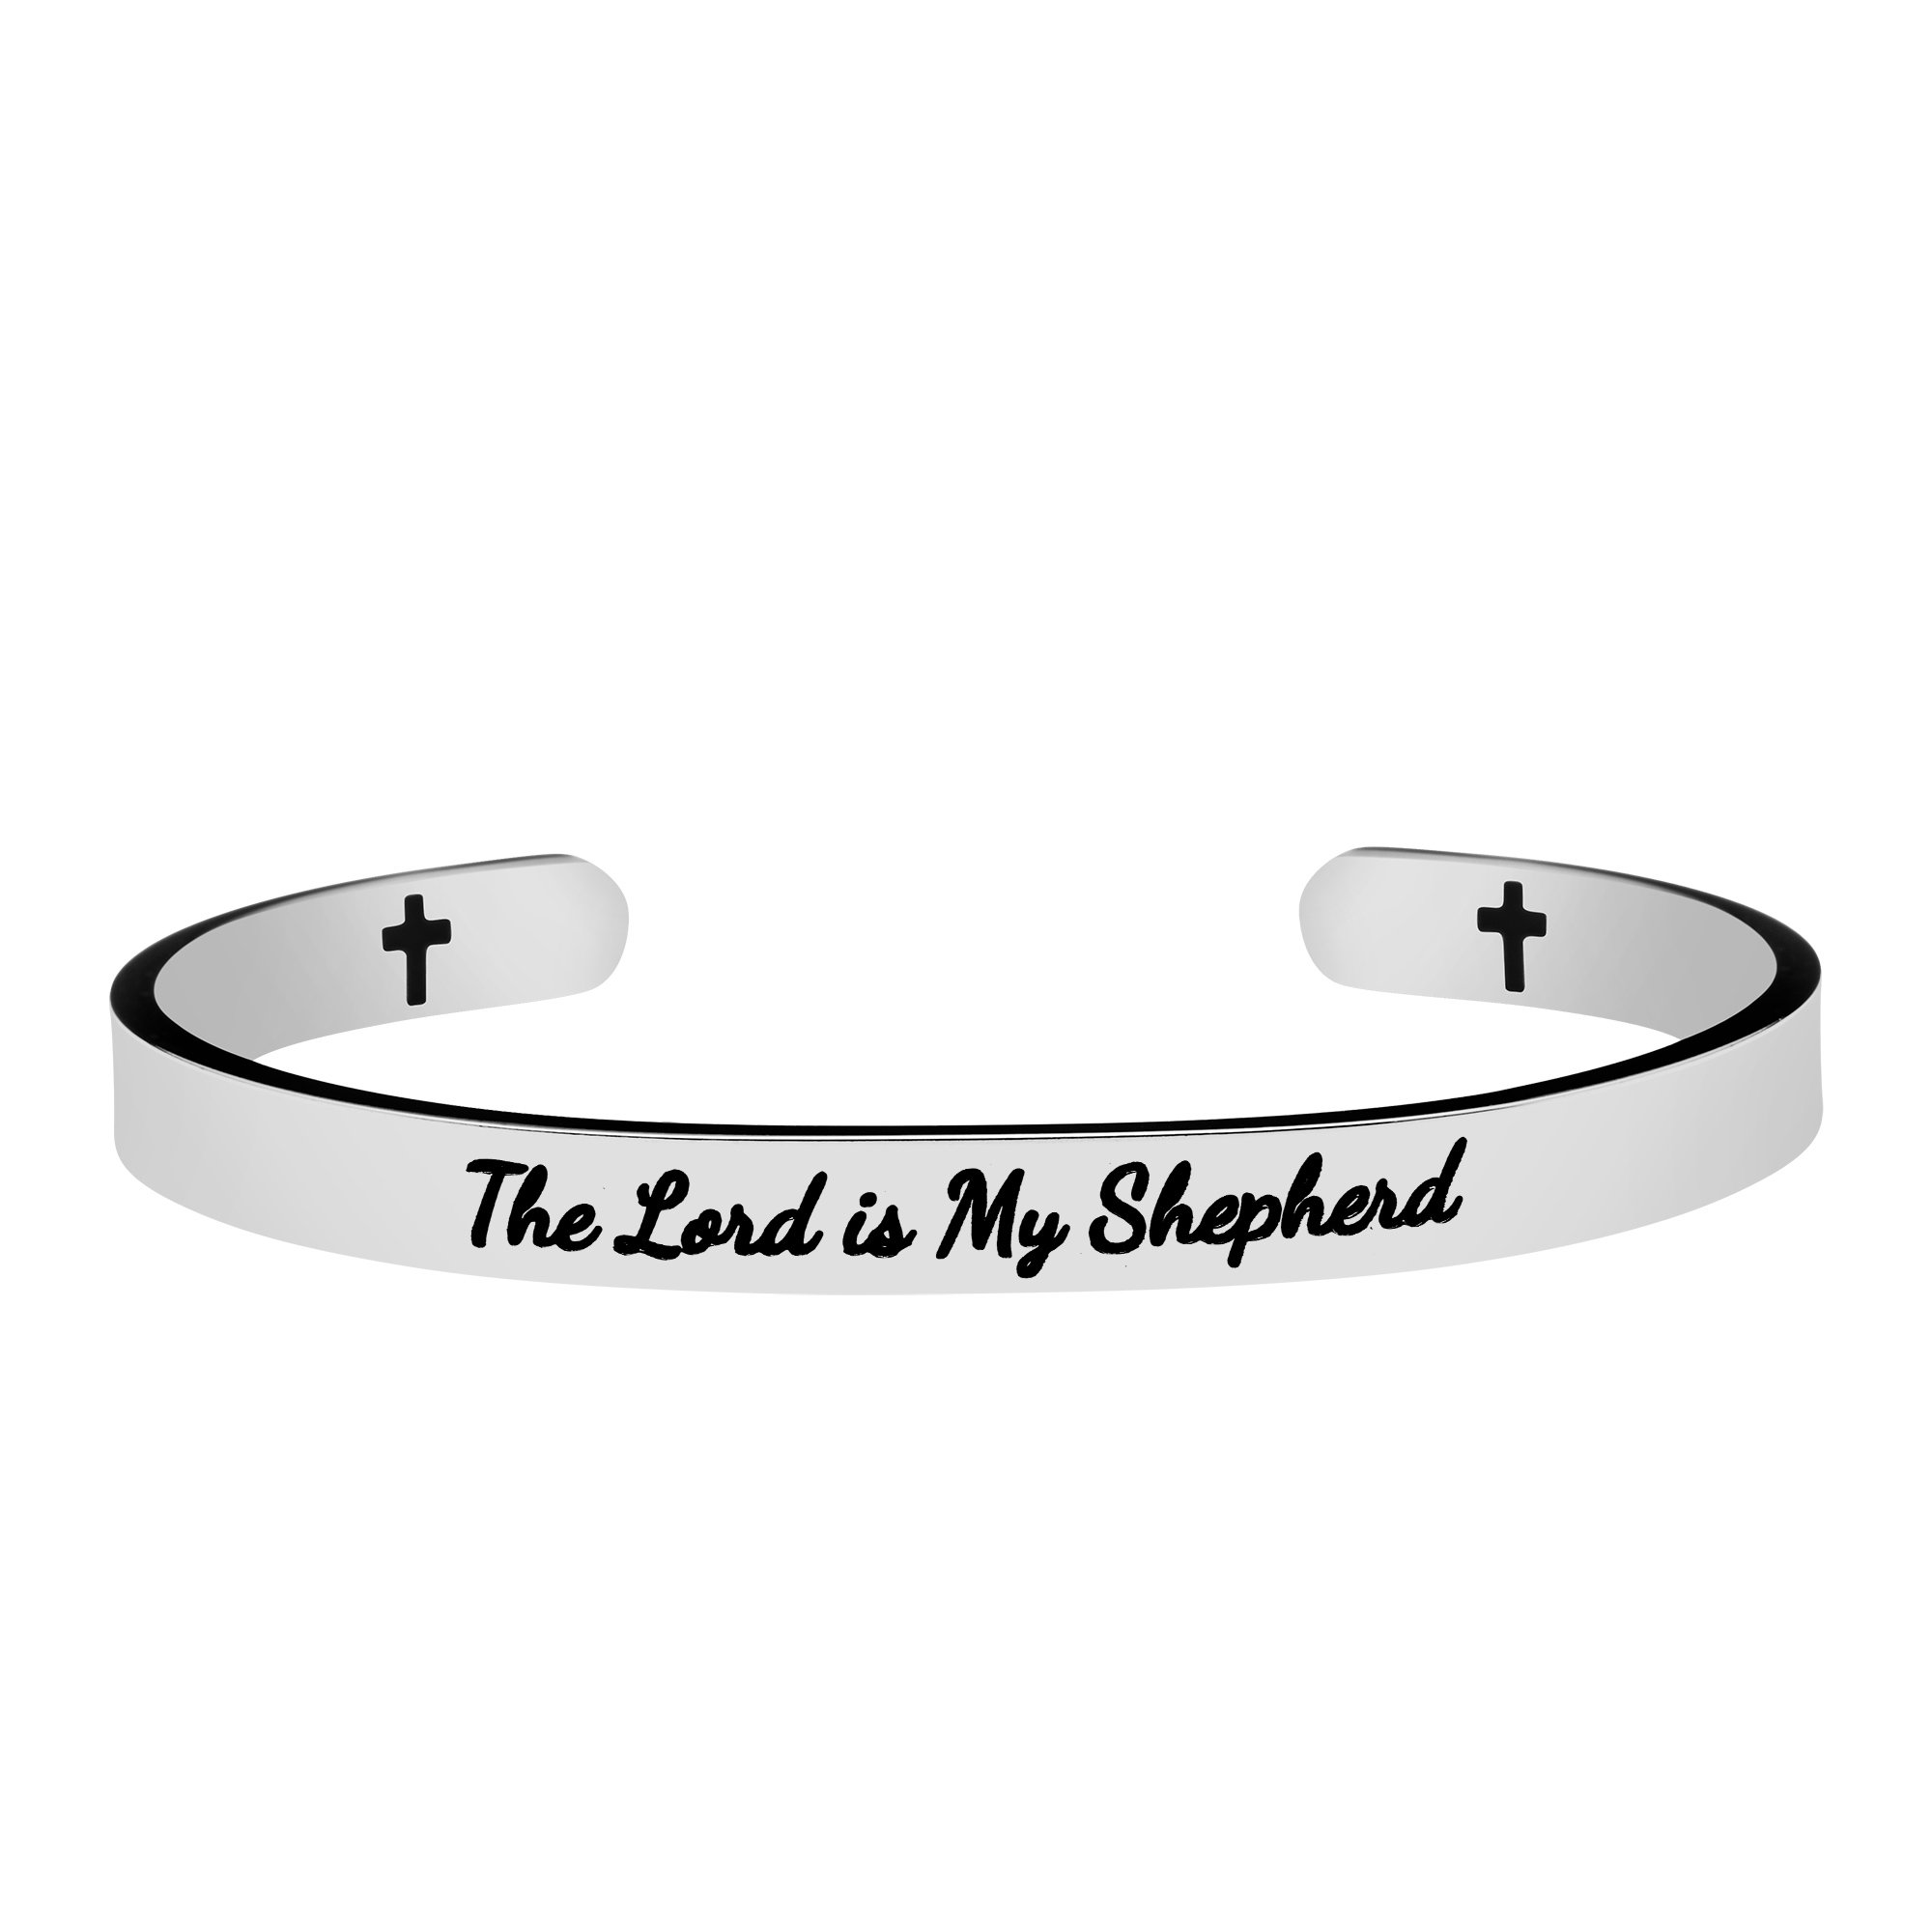 Joycuff Scripture Jewelry Gift for Her Christian Bangle Bible Verse Engraved Message Cuff Bracelet The Lord is My Shepherd